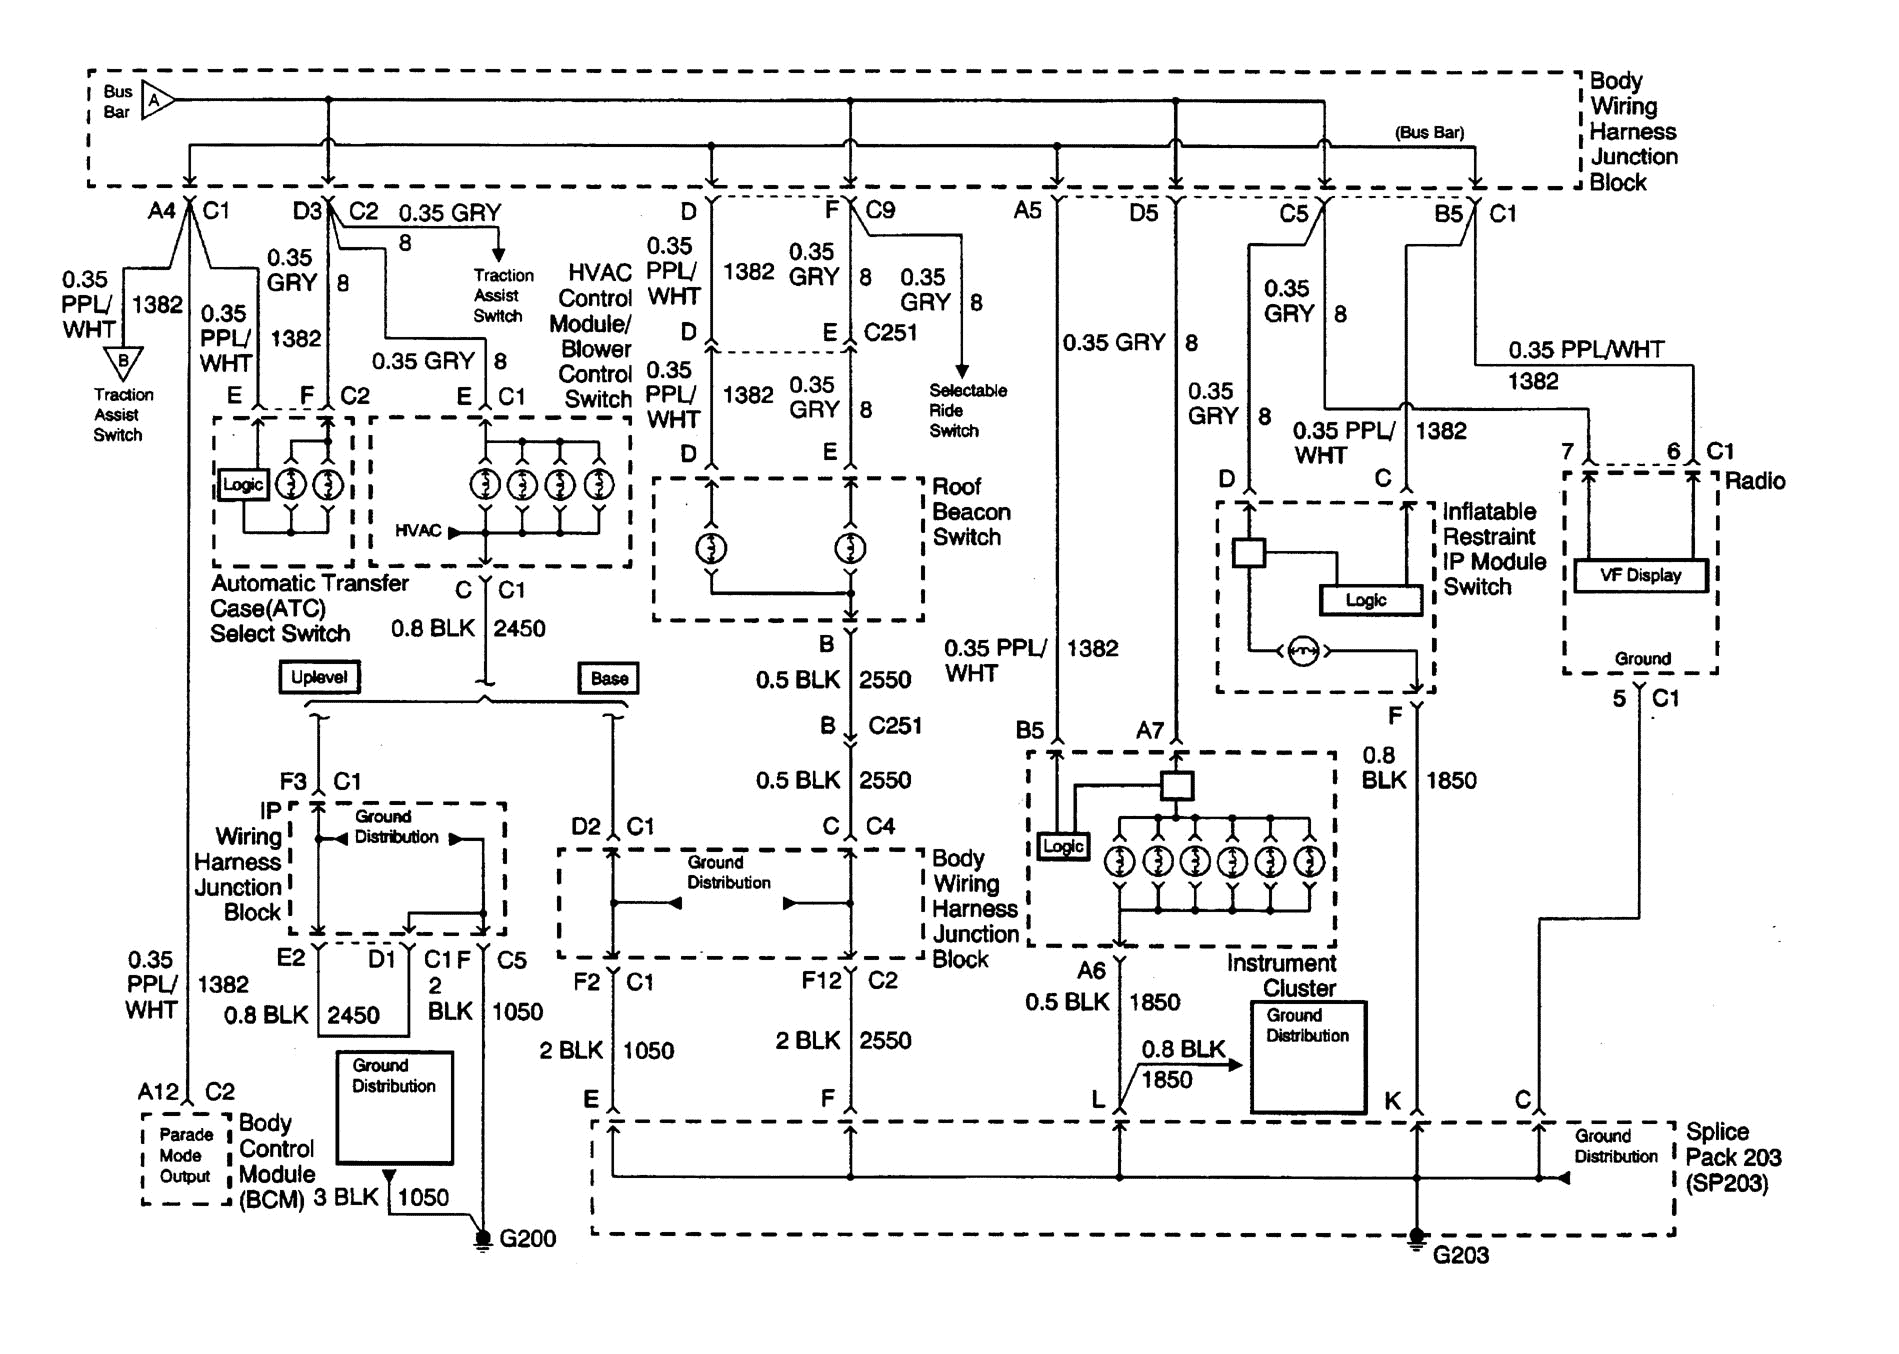 diagram] 2002 silverado 4x4 wiring diagram full version hd quality wiring  diagram - lost-diagram.expertsuniversity.it  diagram database - expertsuniversity.it